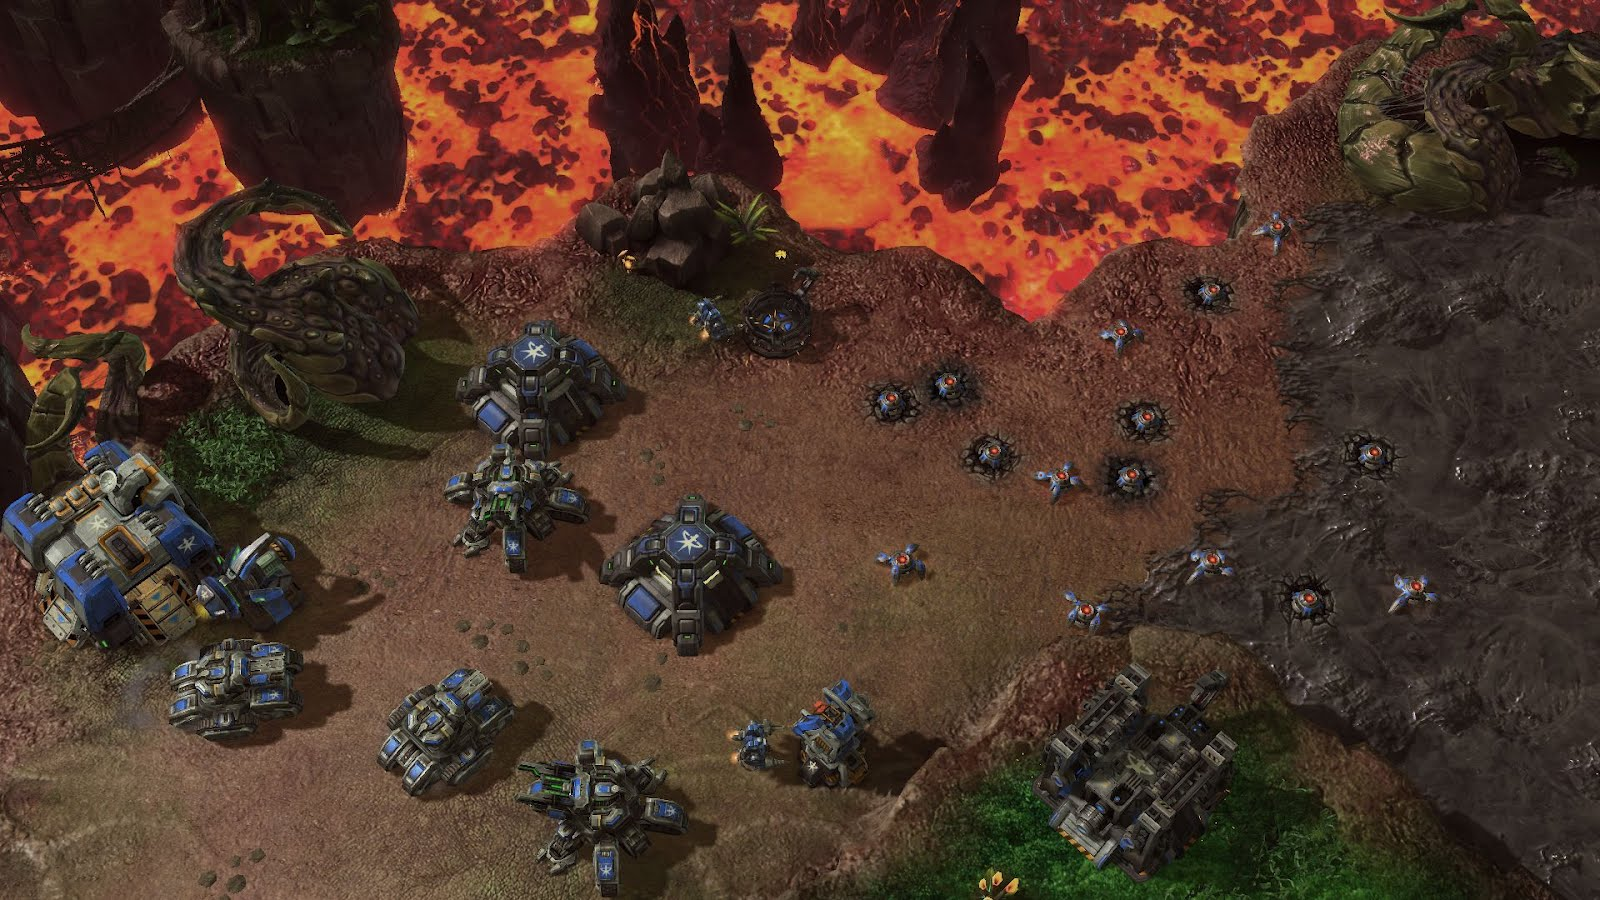 'StarCraft II: Heart of the Swarm' opening cinematic unearthed